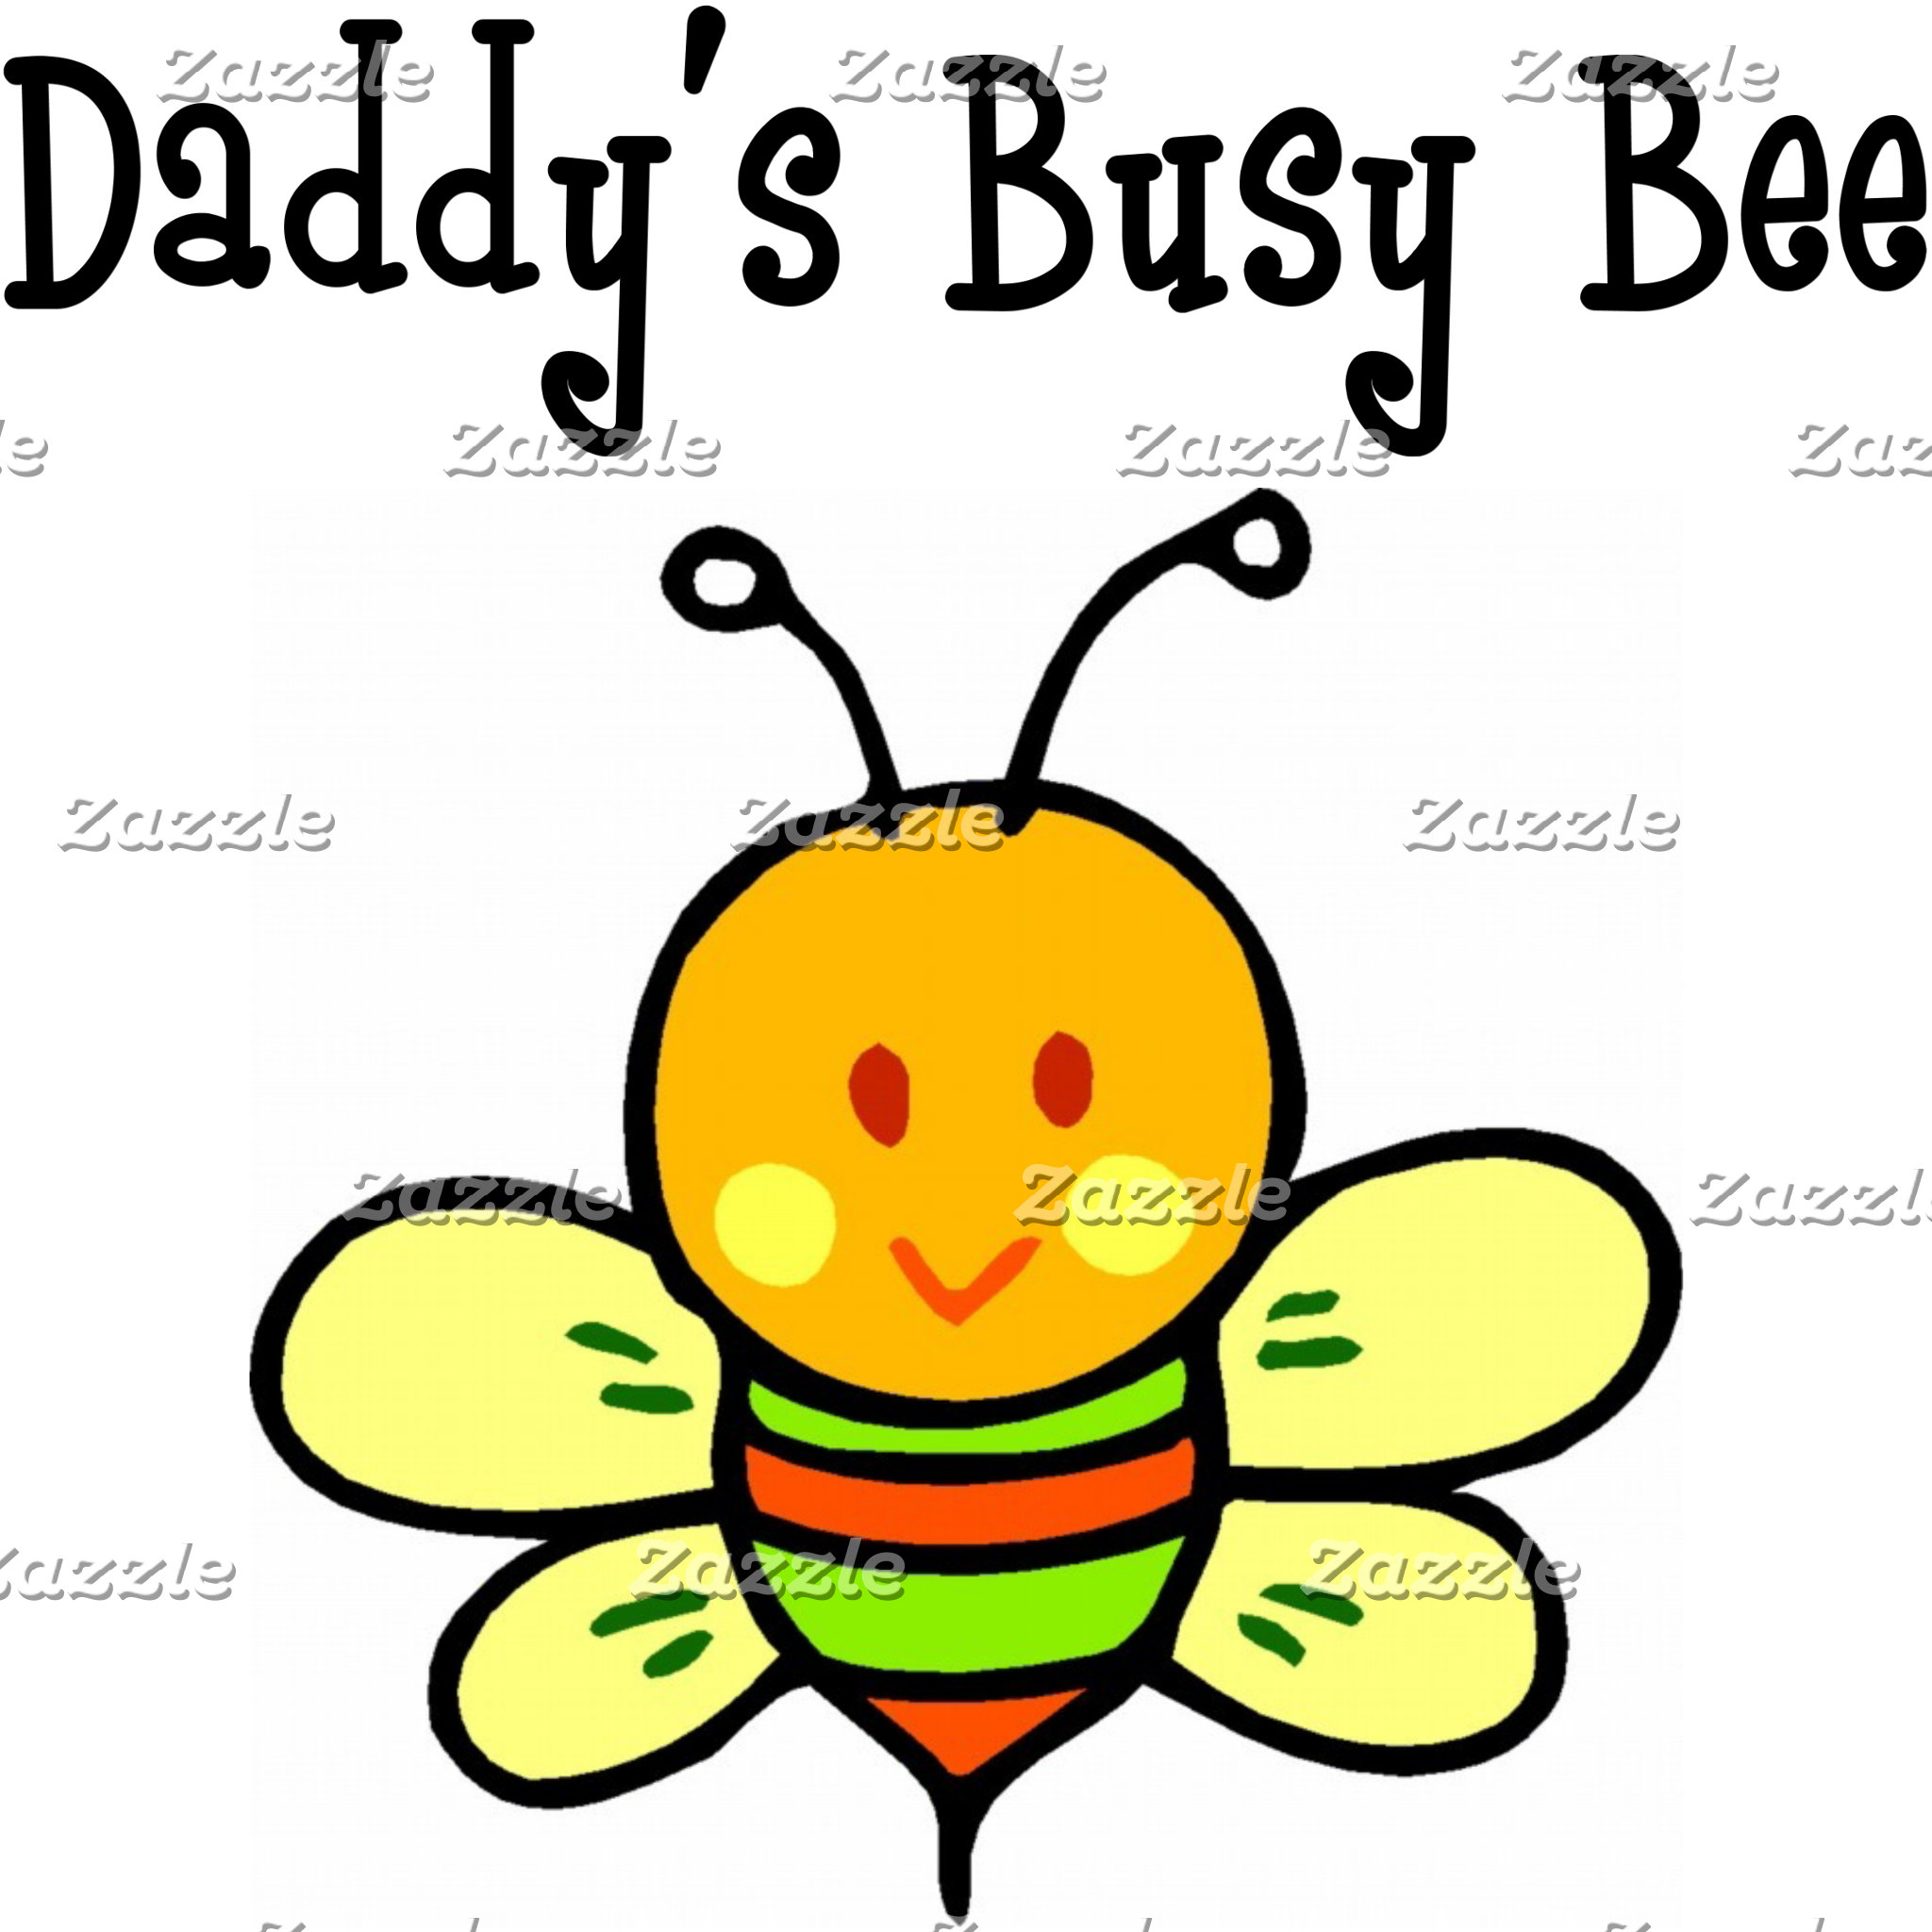 Daddy's Busy Bee